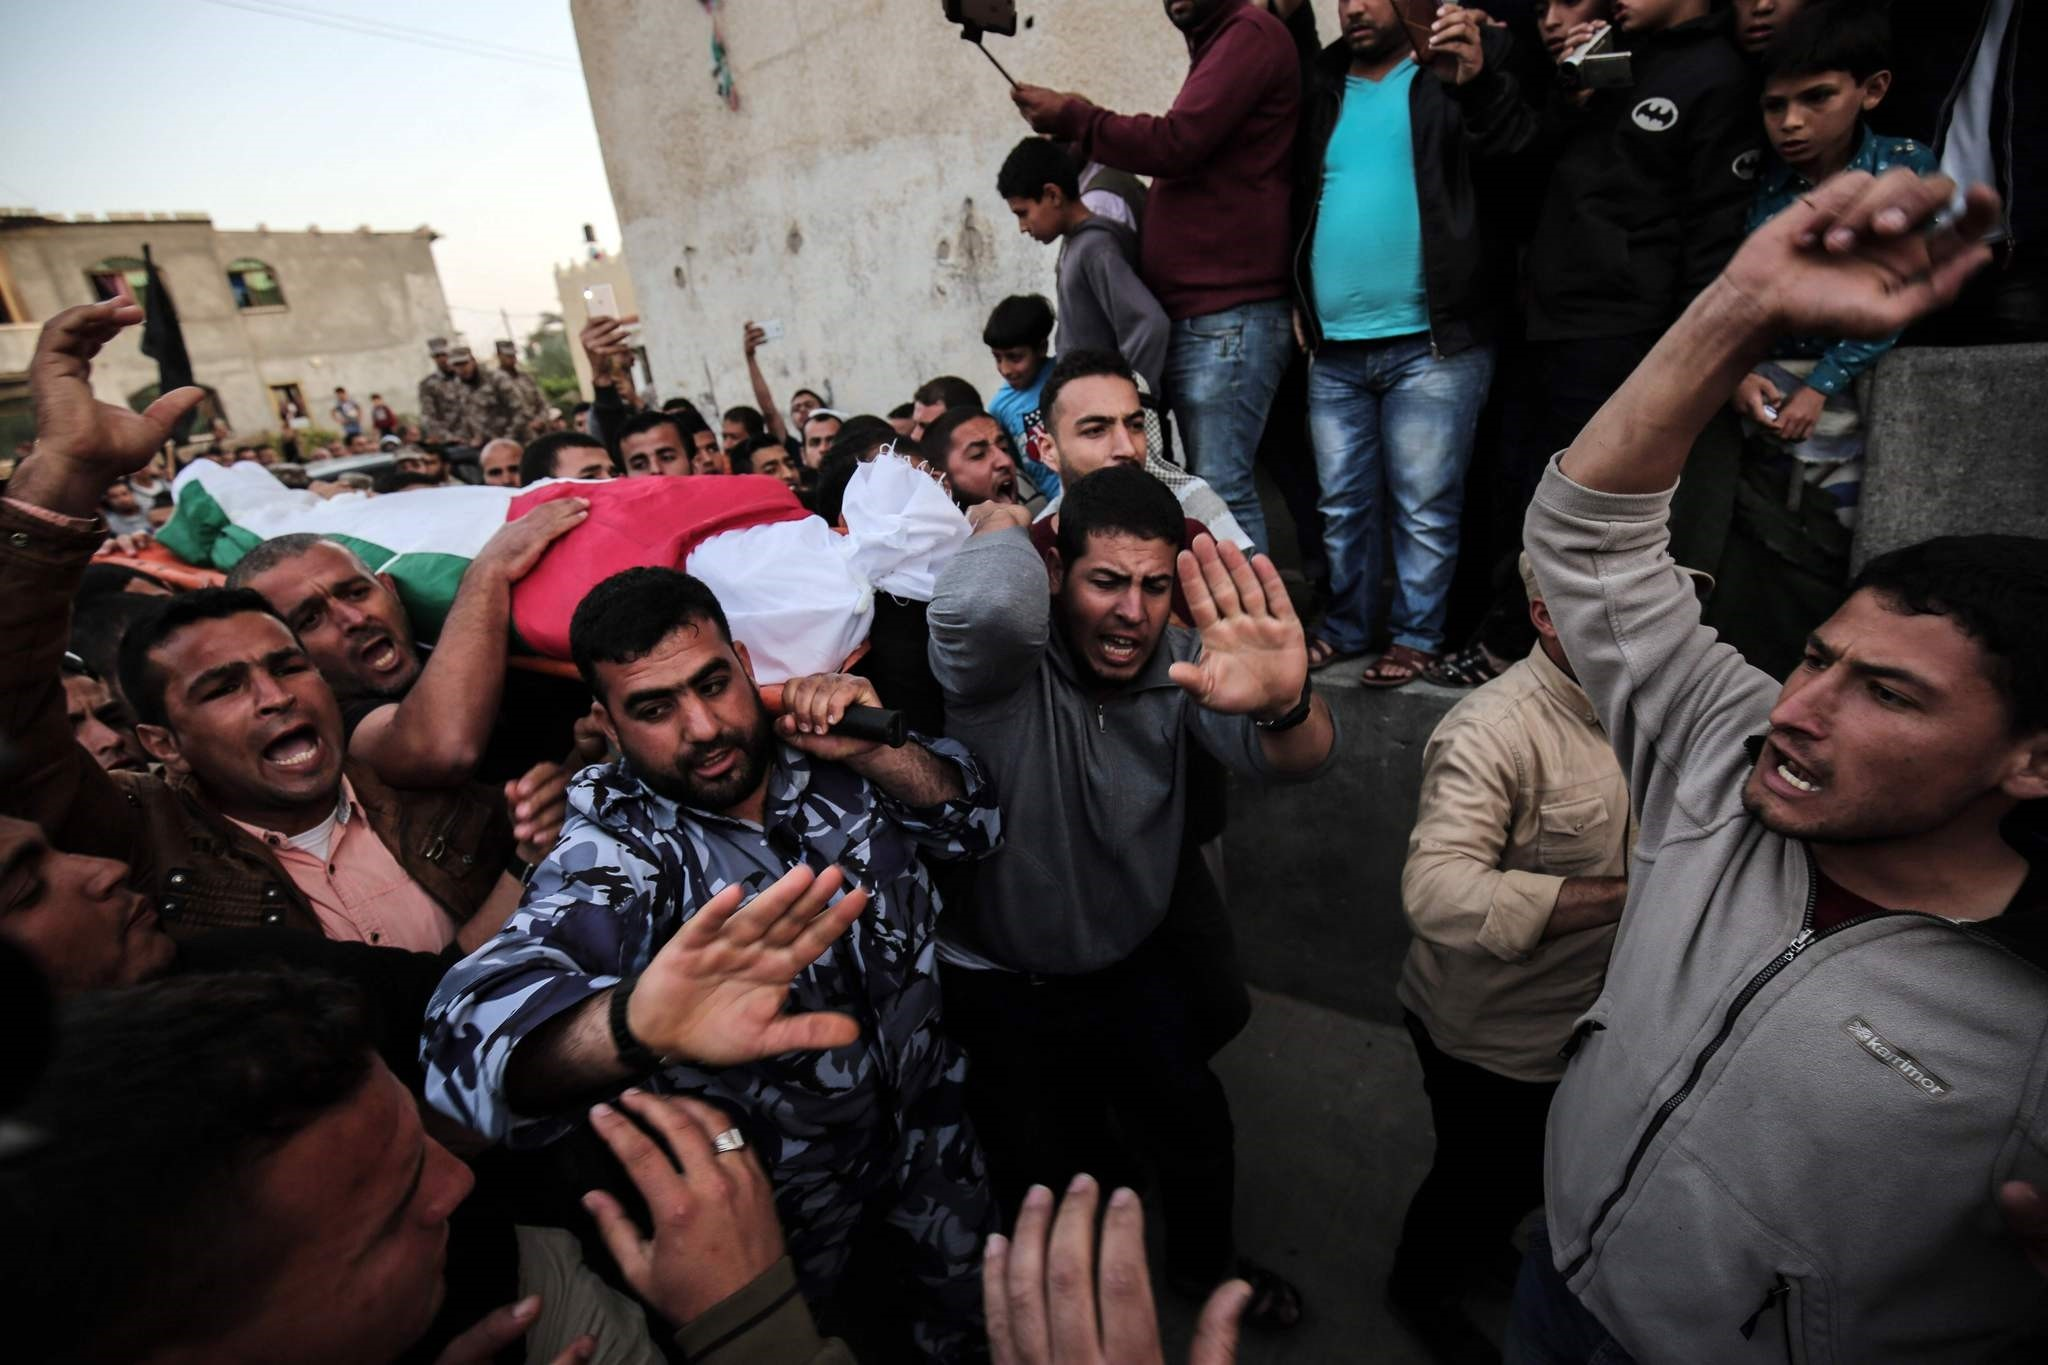 Palestinian mourners carry the body of Osama Qudeih, who was killed by Israeli forces on the Israeli-Gaza border, during his funeral in Khan Yunis, in the southern Gaza Strip, on April 6, 2018. (AFP PHOTO)